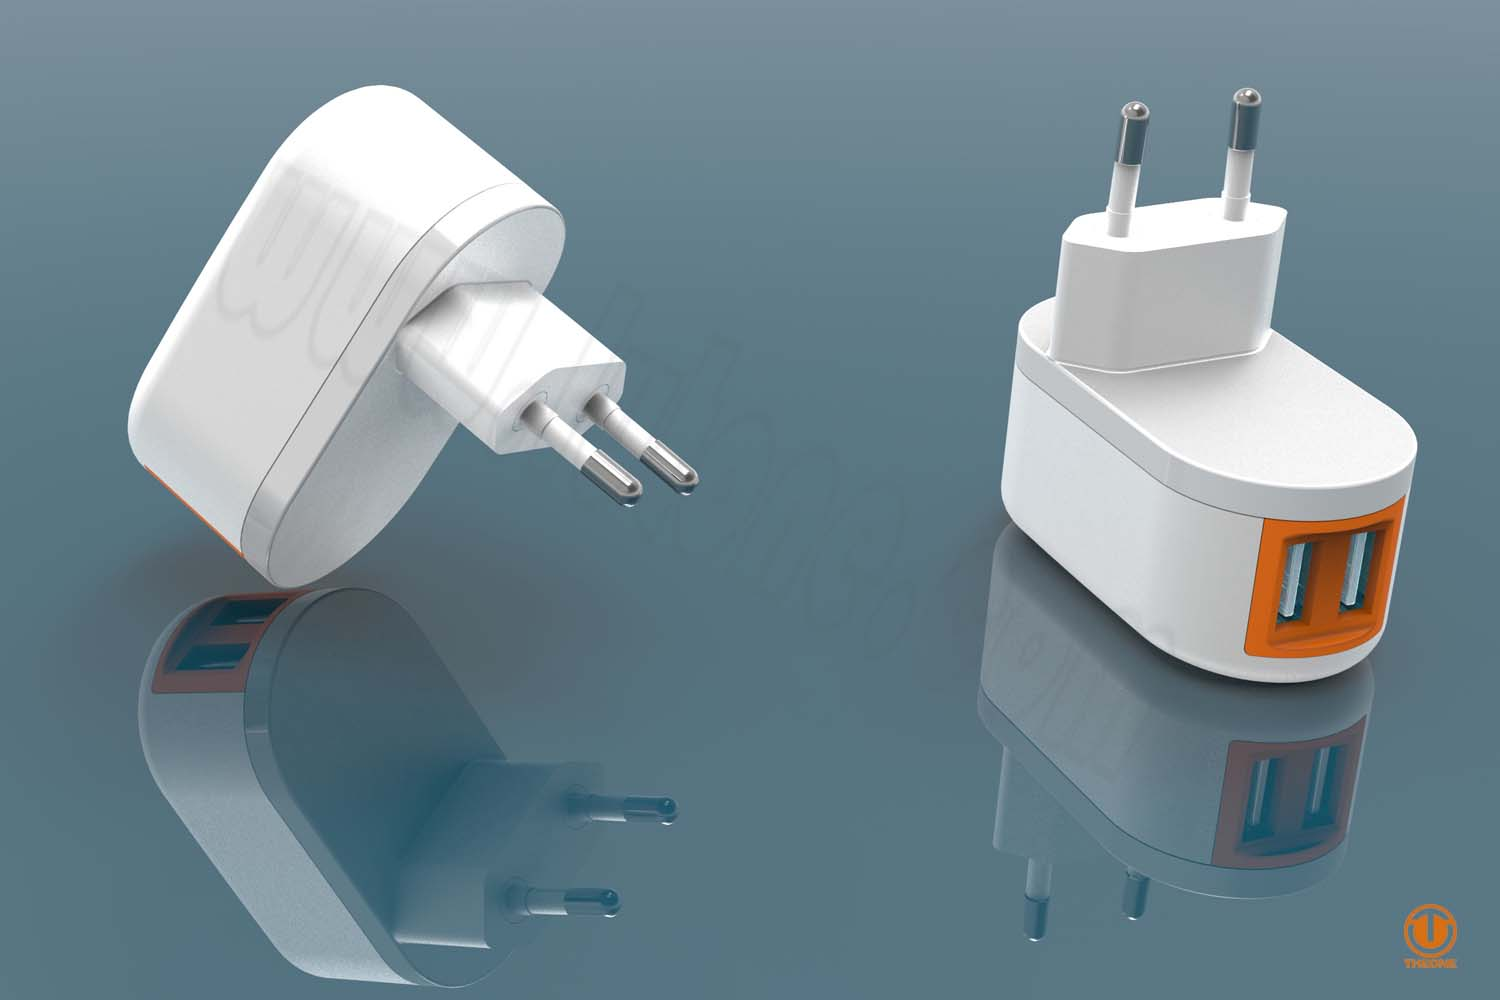 tw01a8-4 dual usb wall charger